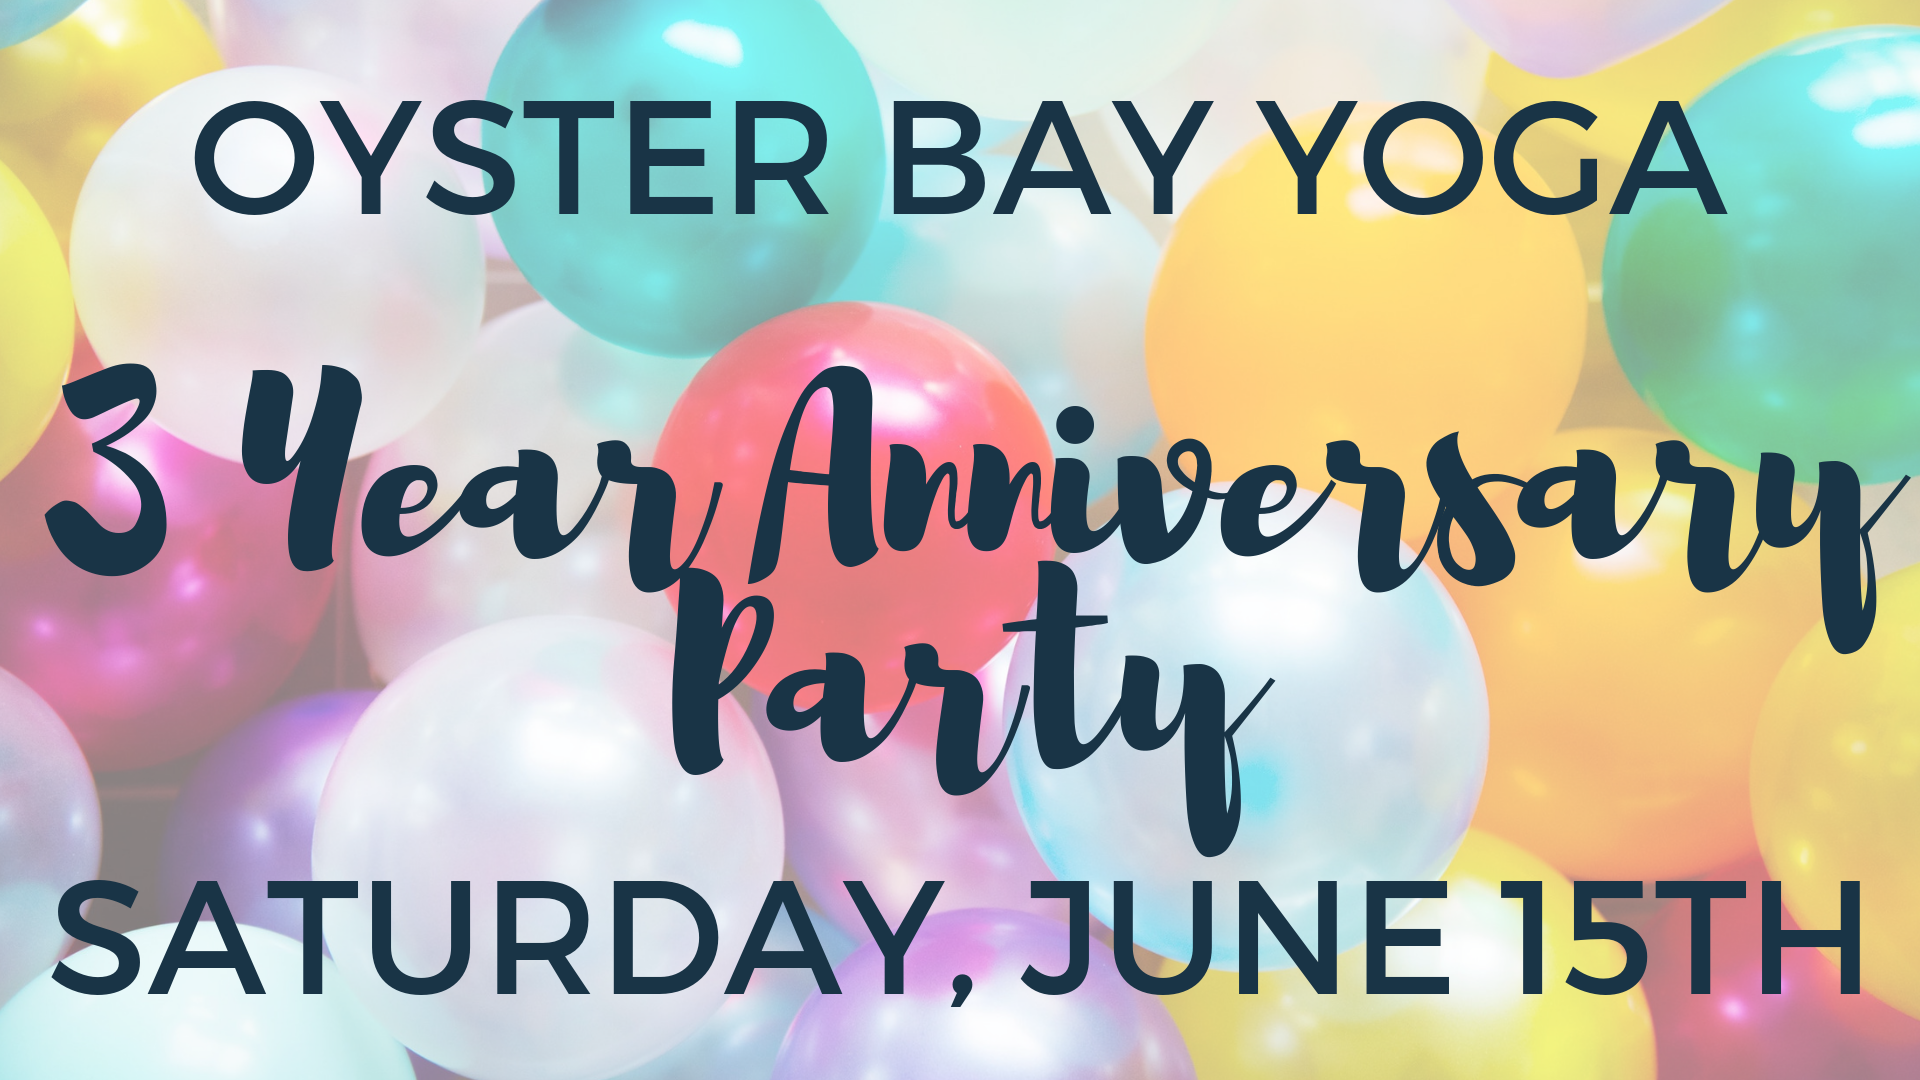 Oyster Bay Yoga2 Year Anniversary Party.png